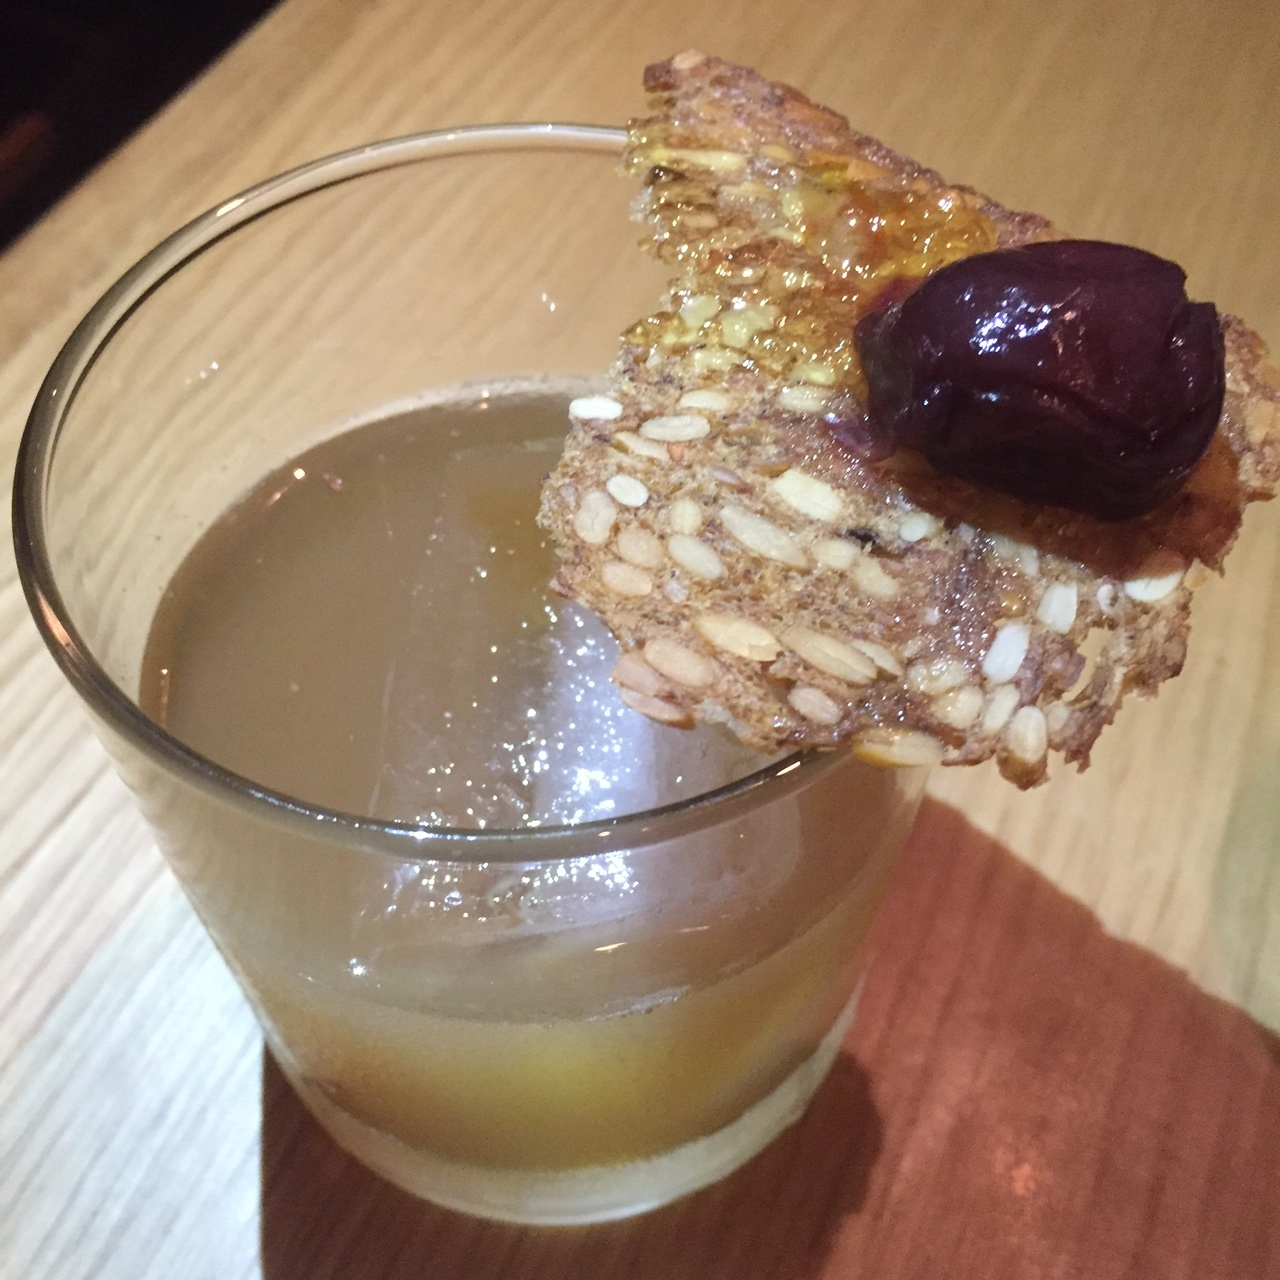 Cocktail #8